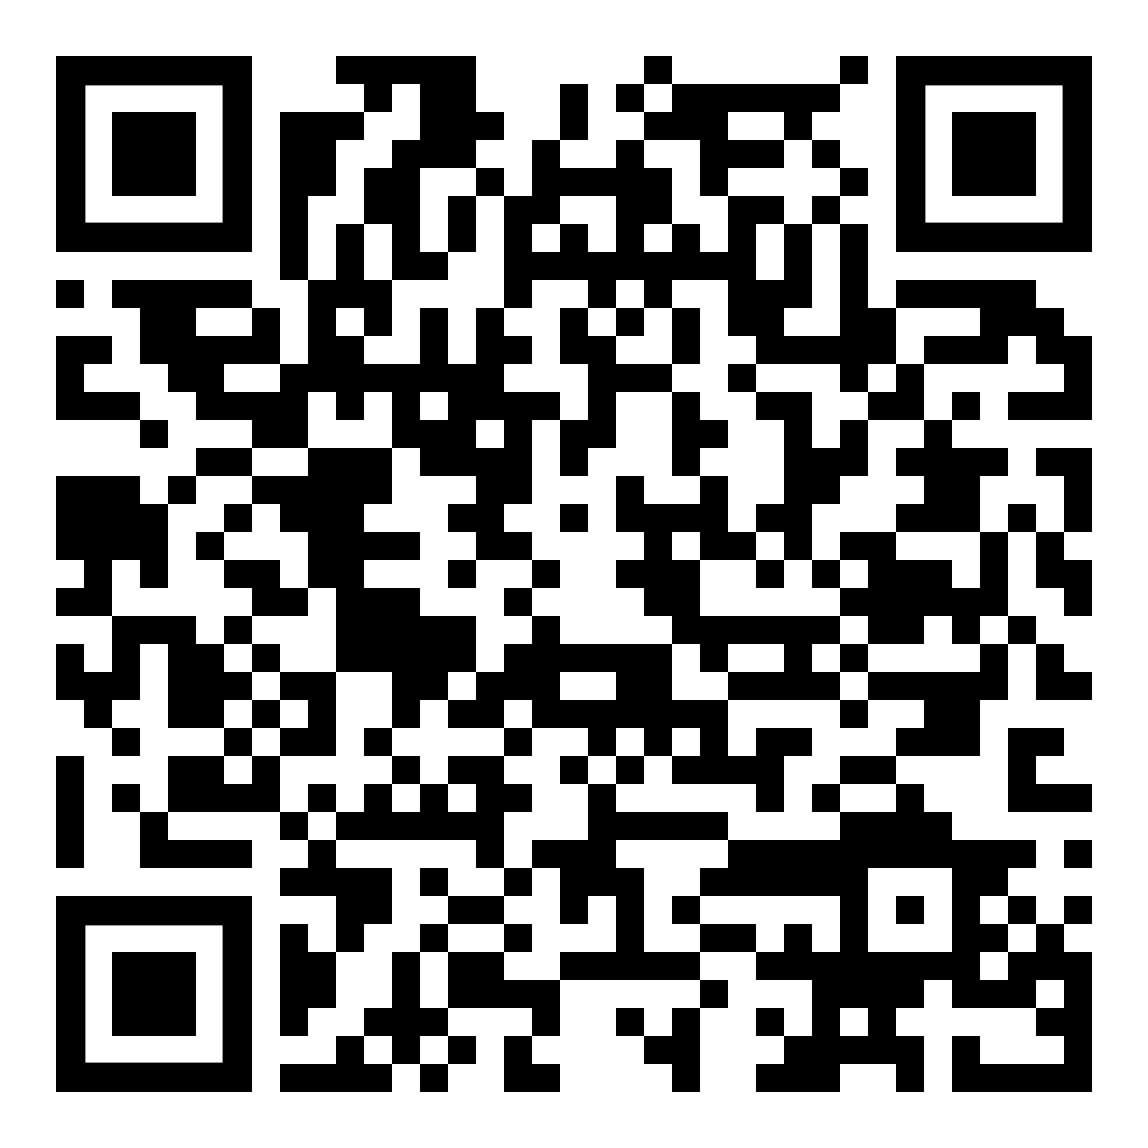 QR code linking to https://learning.rzss.org.uk/mod/hvp/view.php?id=3259